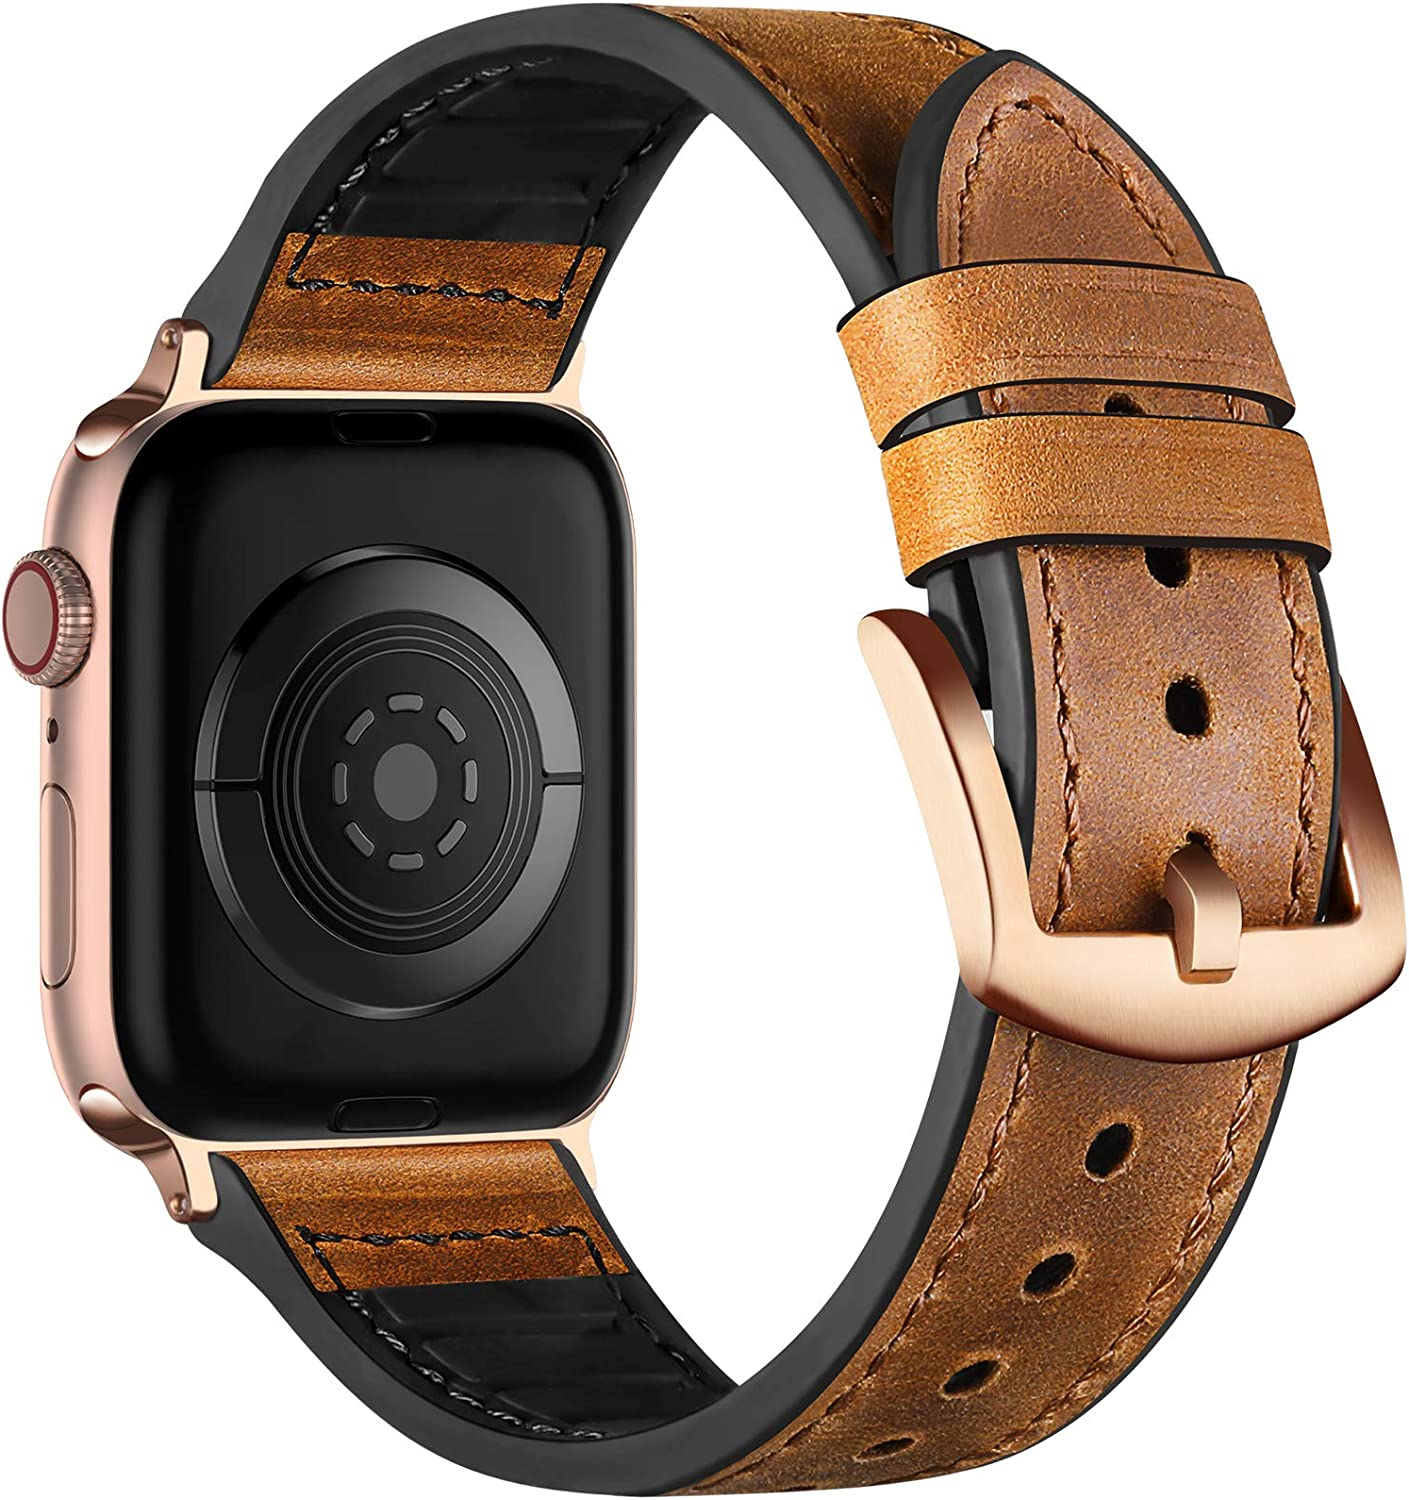 Muranne Leather Band Compatible with Apple Watch SE 40mm 38mm for Women Men, Genuine Leather Strap with Sweat Proof Rubber Compatible with iWatch Series 6 5 4 3 2 1, Dark Brown/Rose Gold Adapter